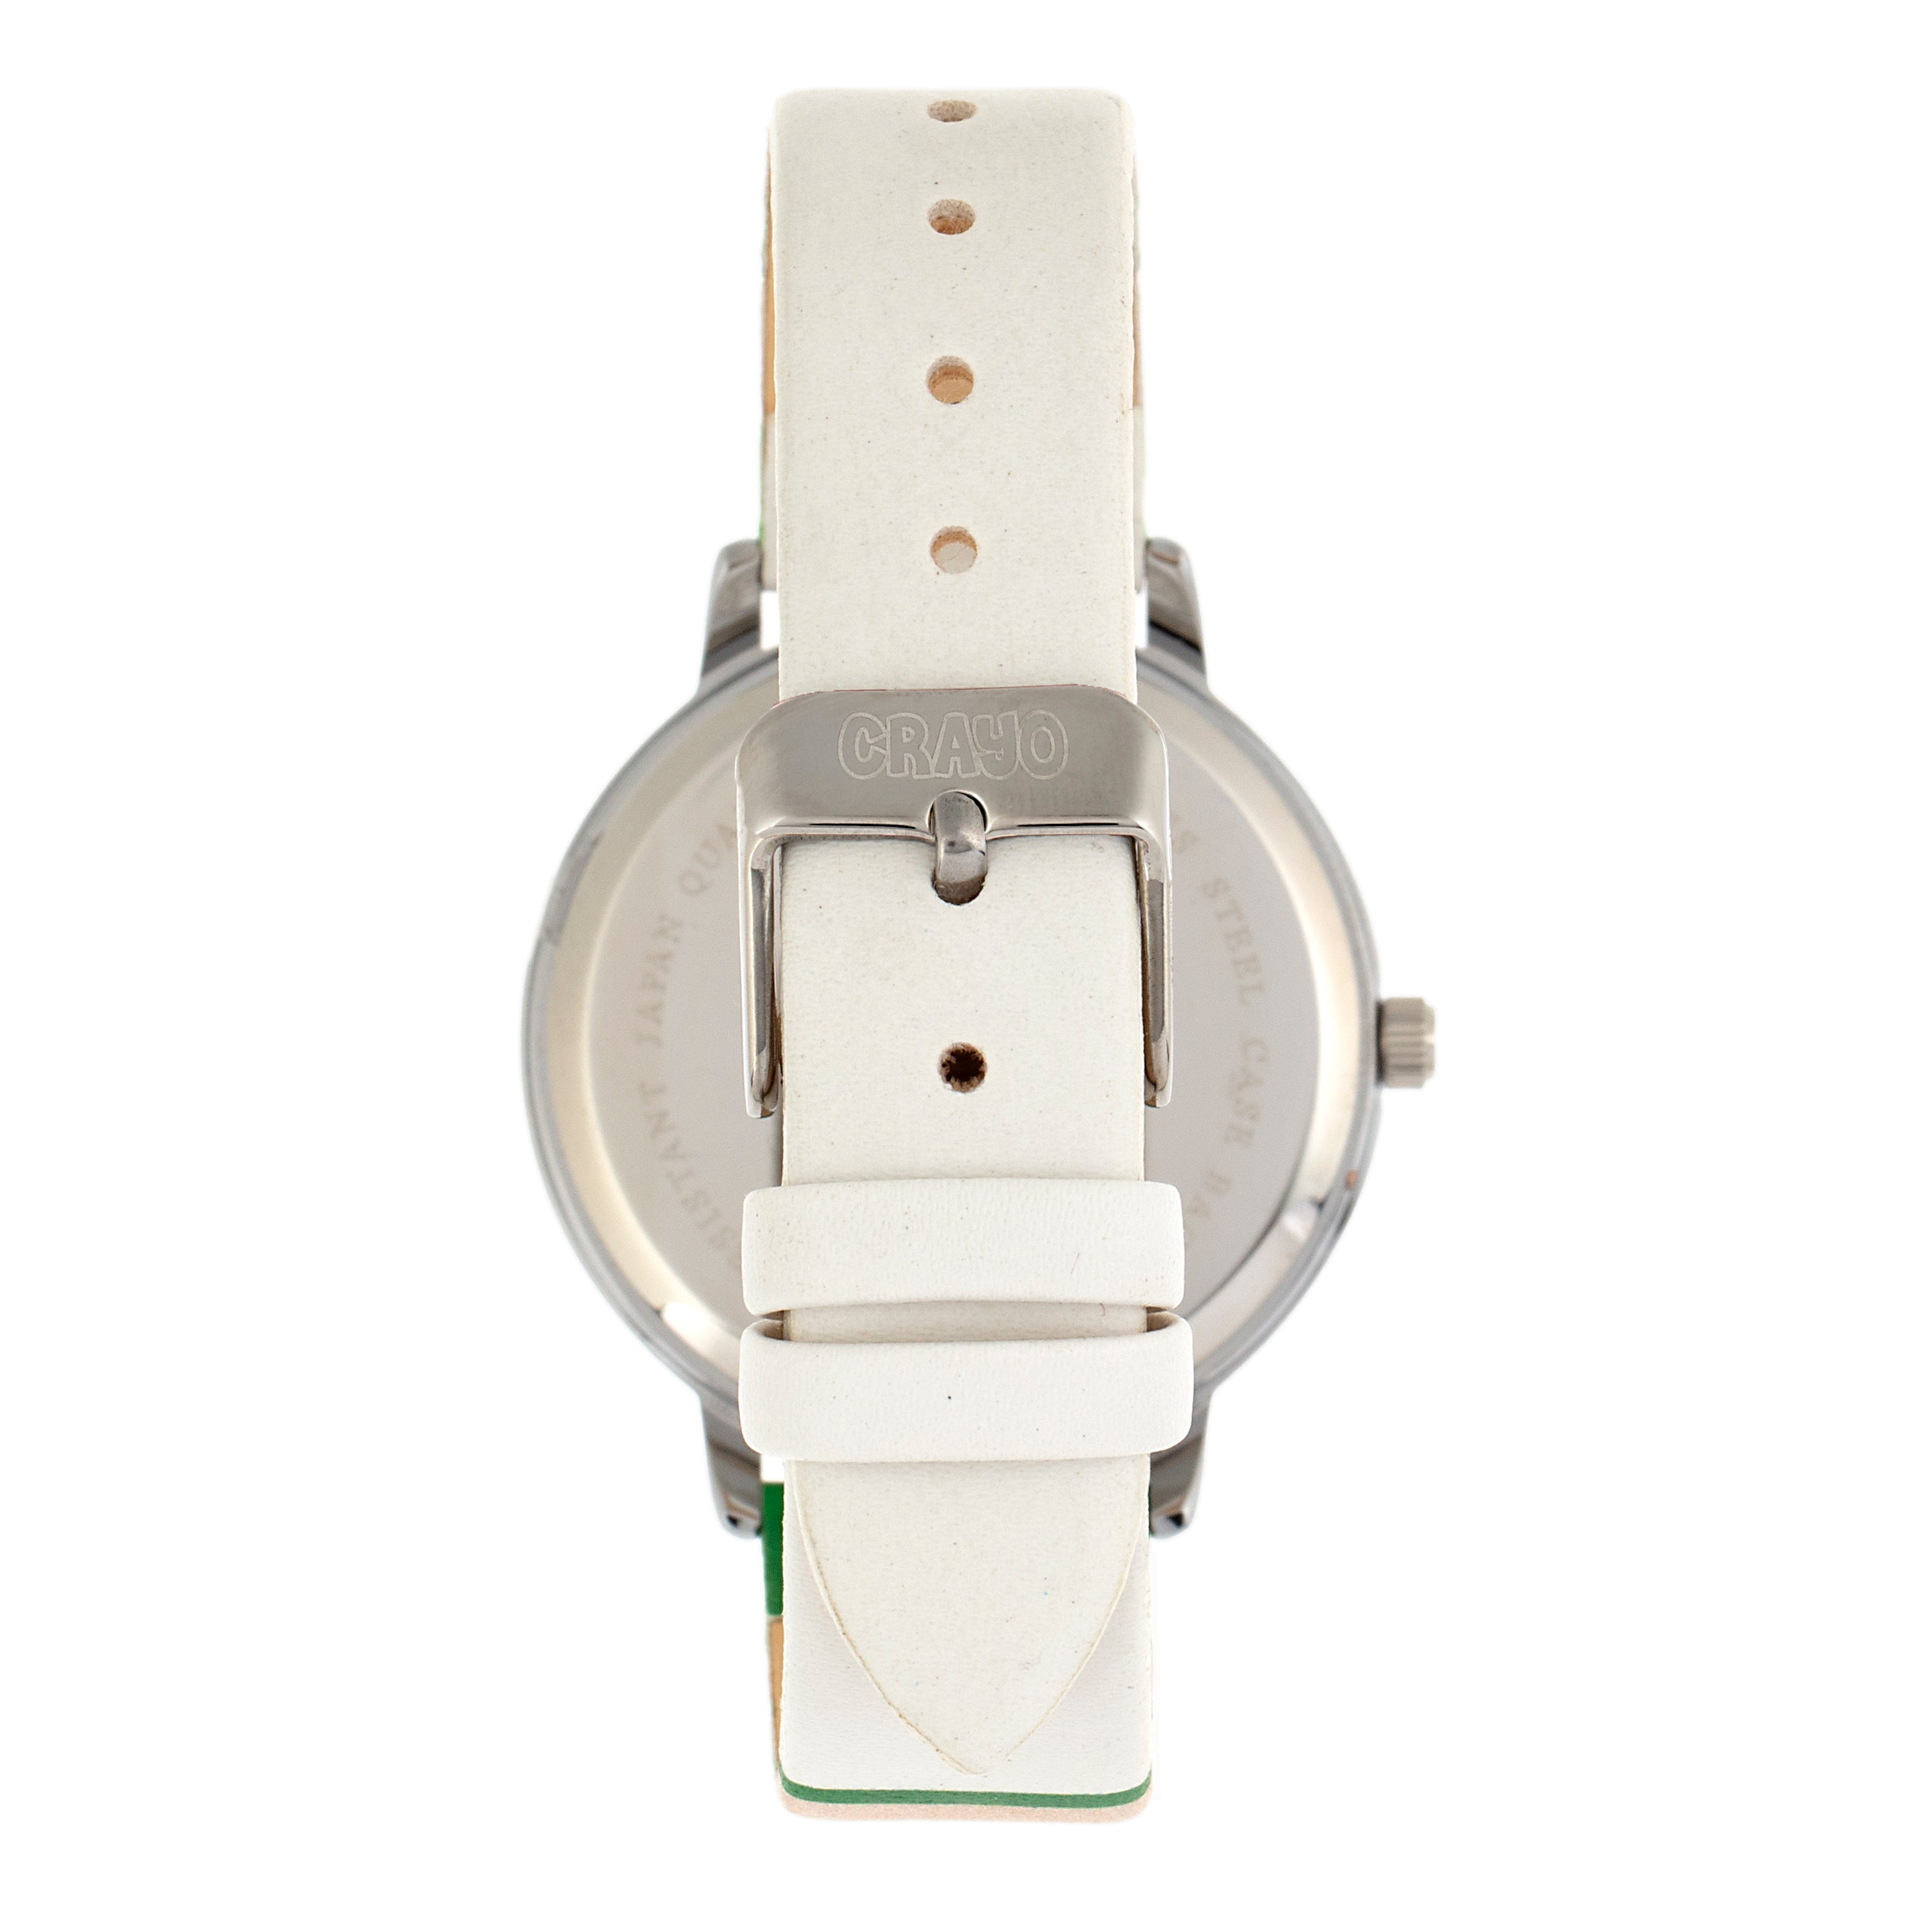 Crayo Swing Unisex Watch - Mint - CRACR5702